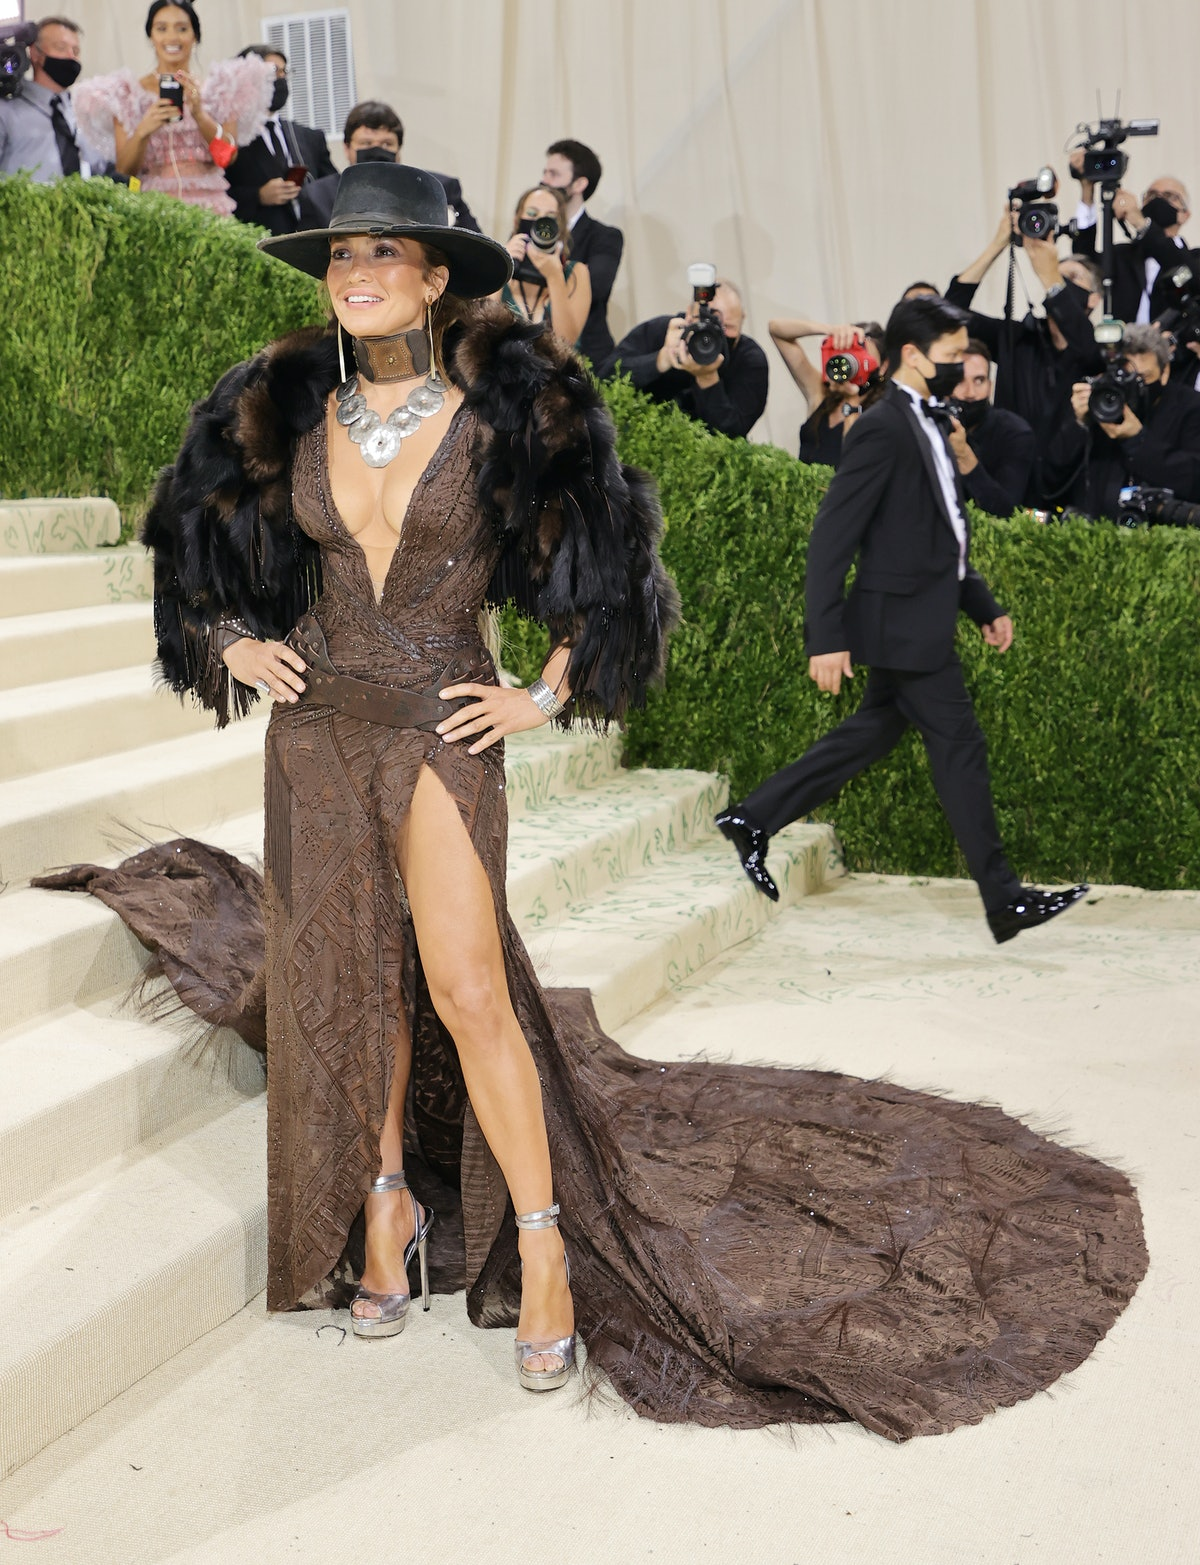 Jennifer Lopez attends The 2021 Met Gala Celebrating In America: A Lexicon Of Fashion at Metropolita...